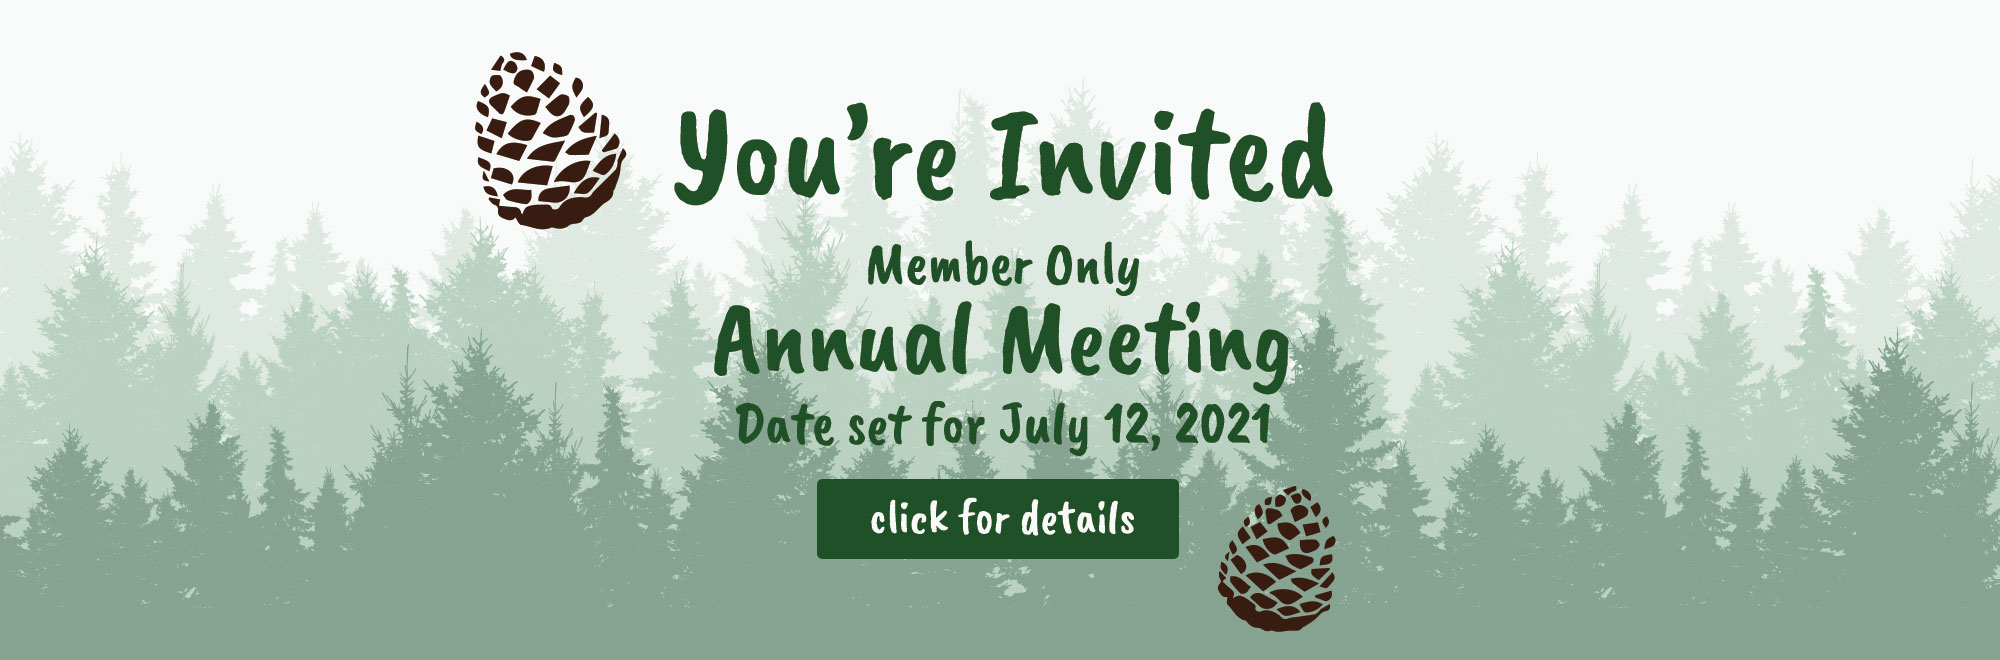 You're invited to our member only annual meeting on July 12th